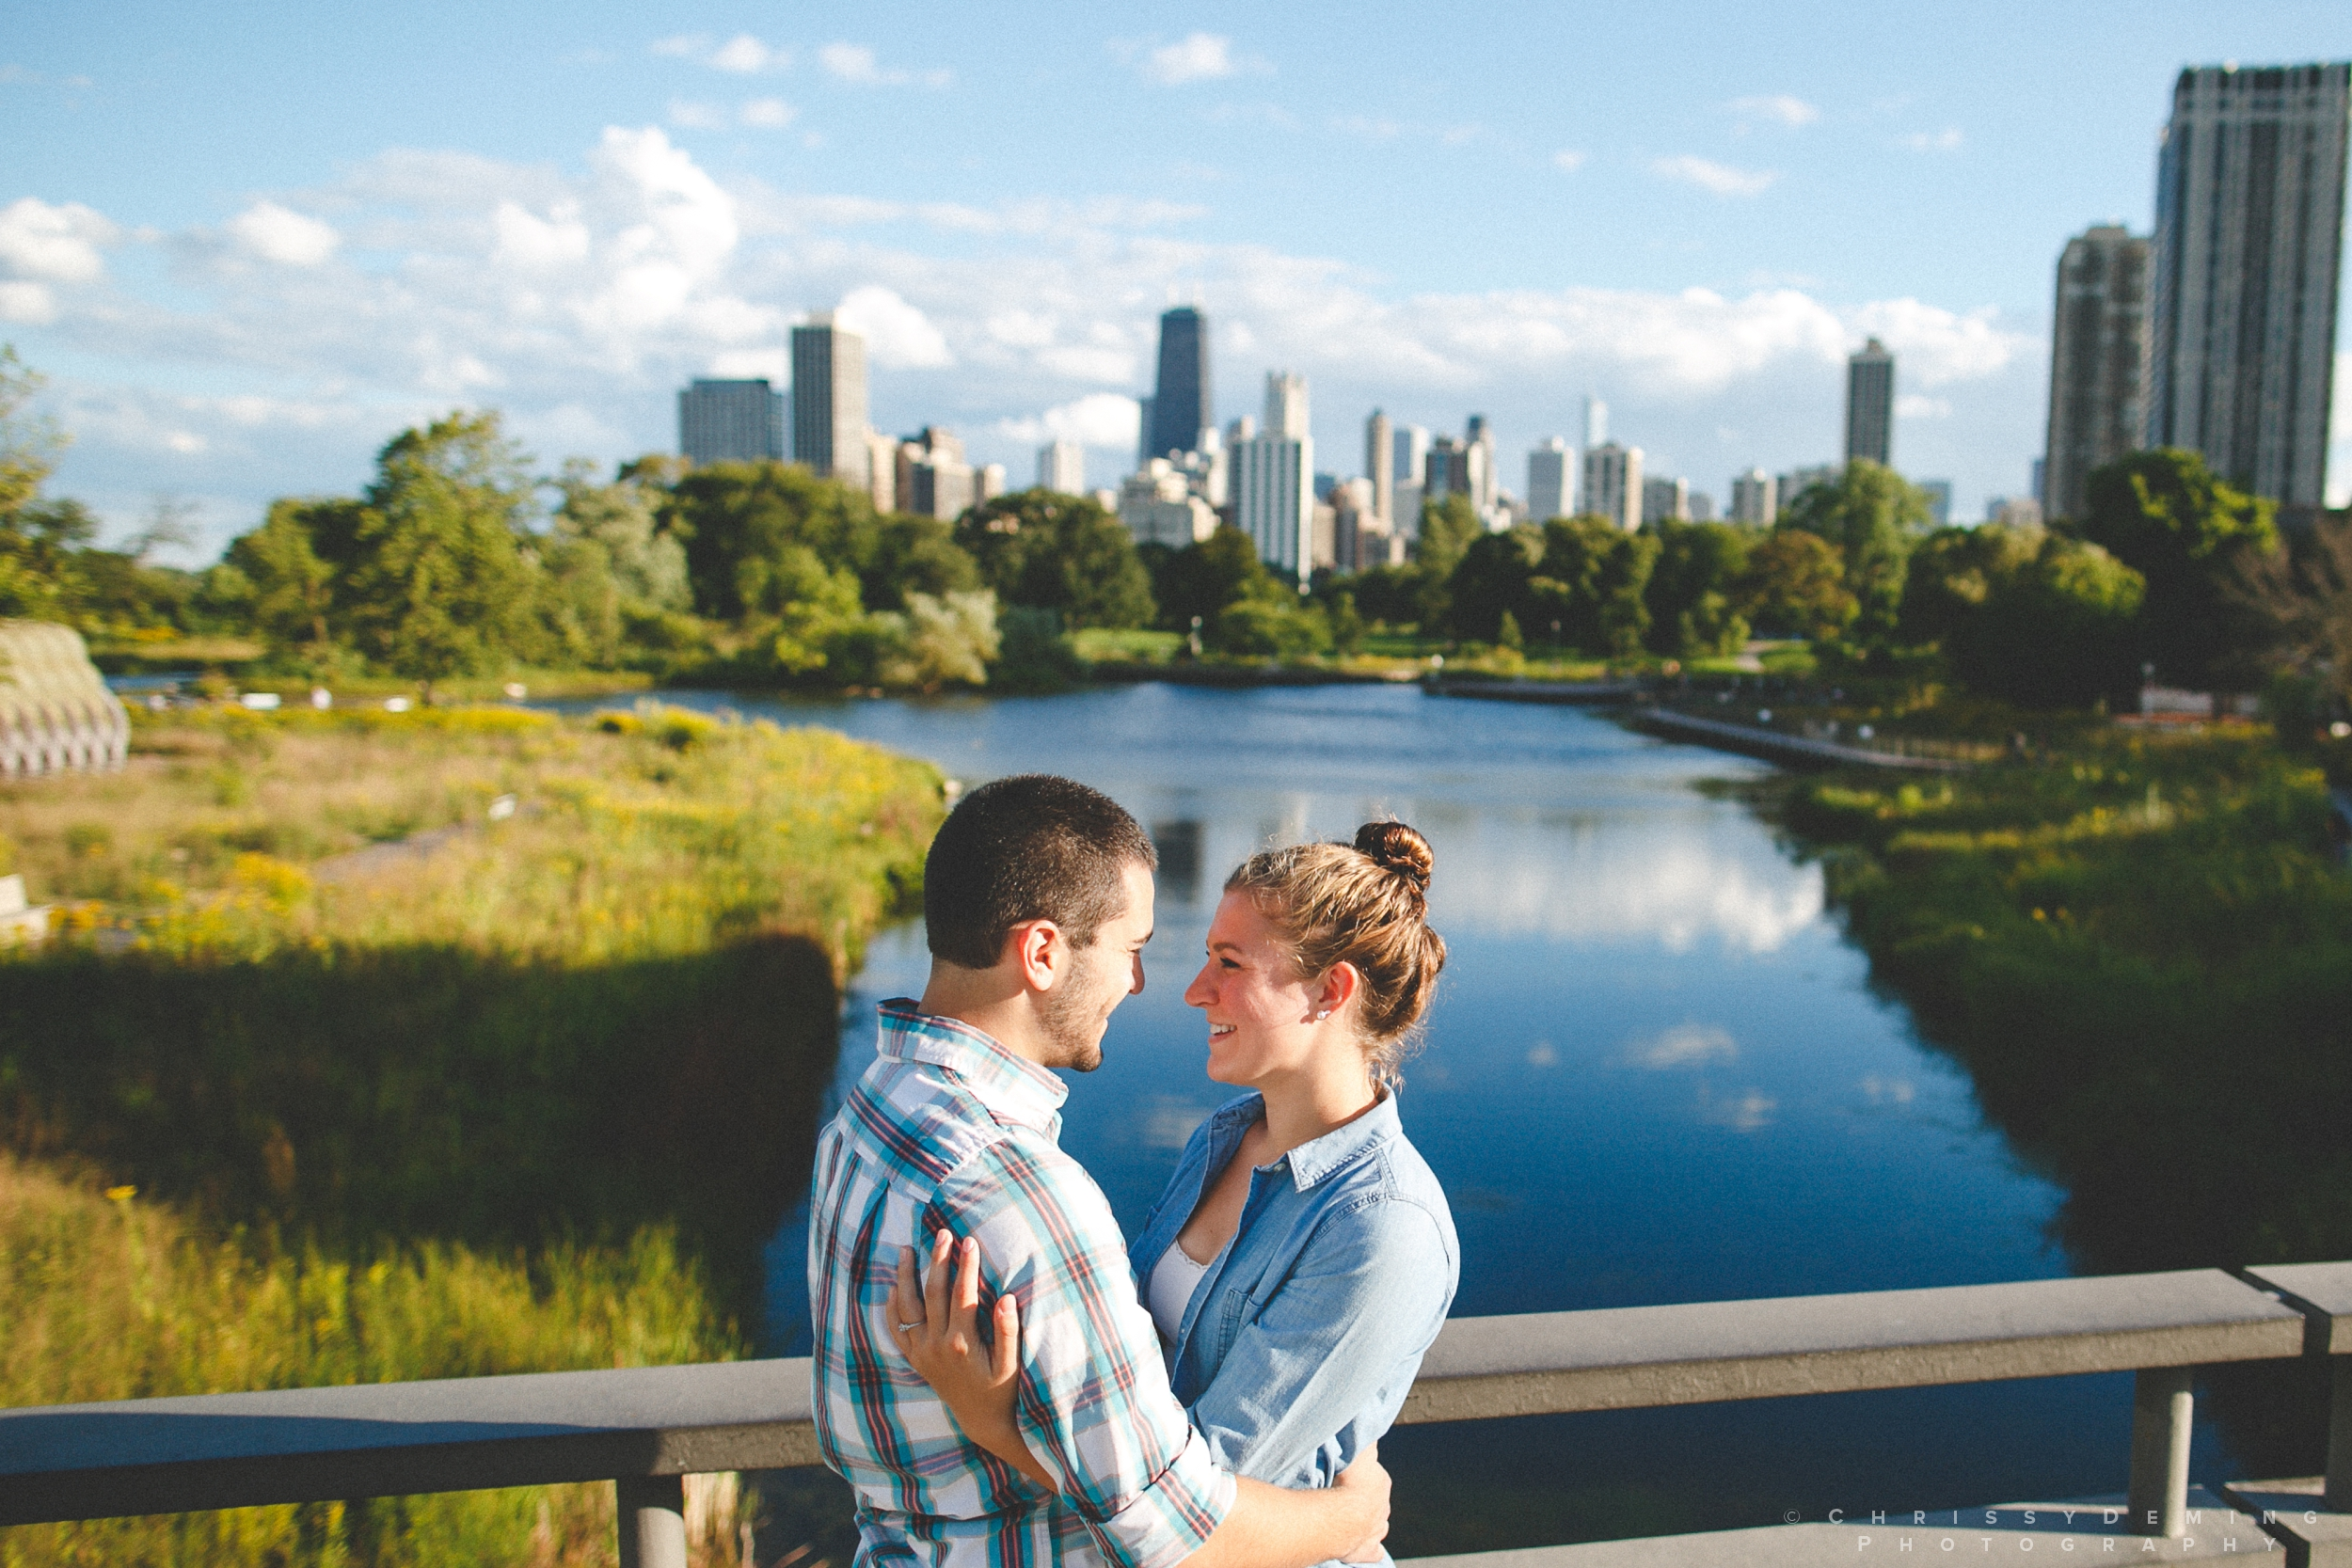 chicago_oakstreetbeach_lincolnpark_engagement_photography_0003.jpg